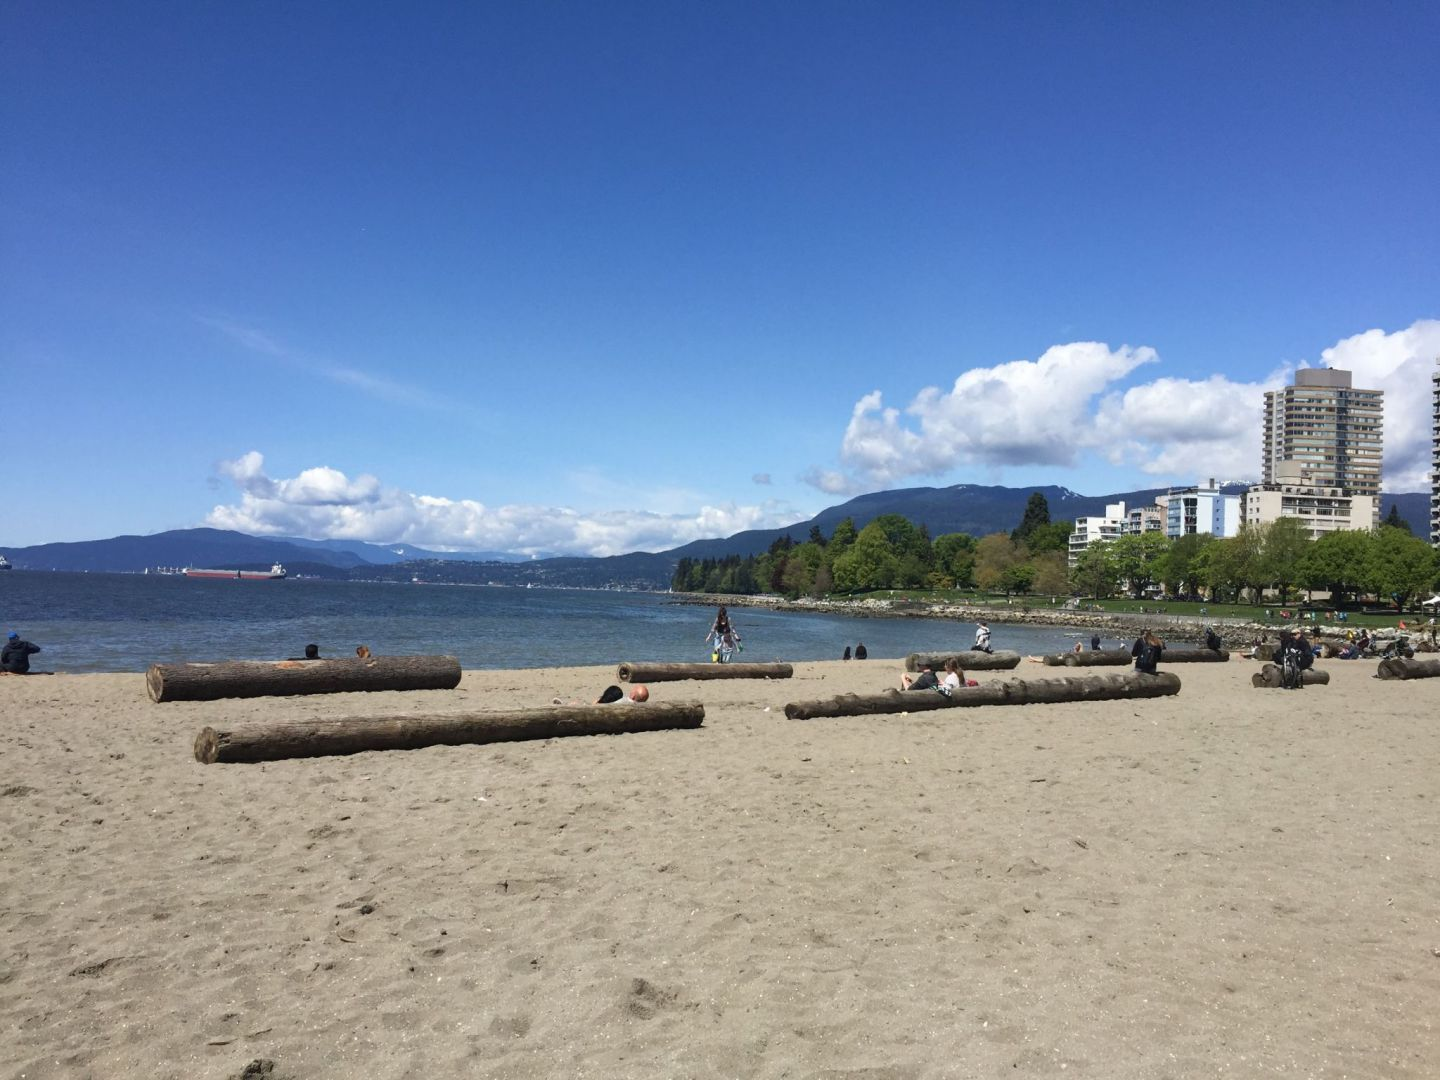 Best beaches in Vancouver: English Bay